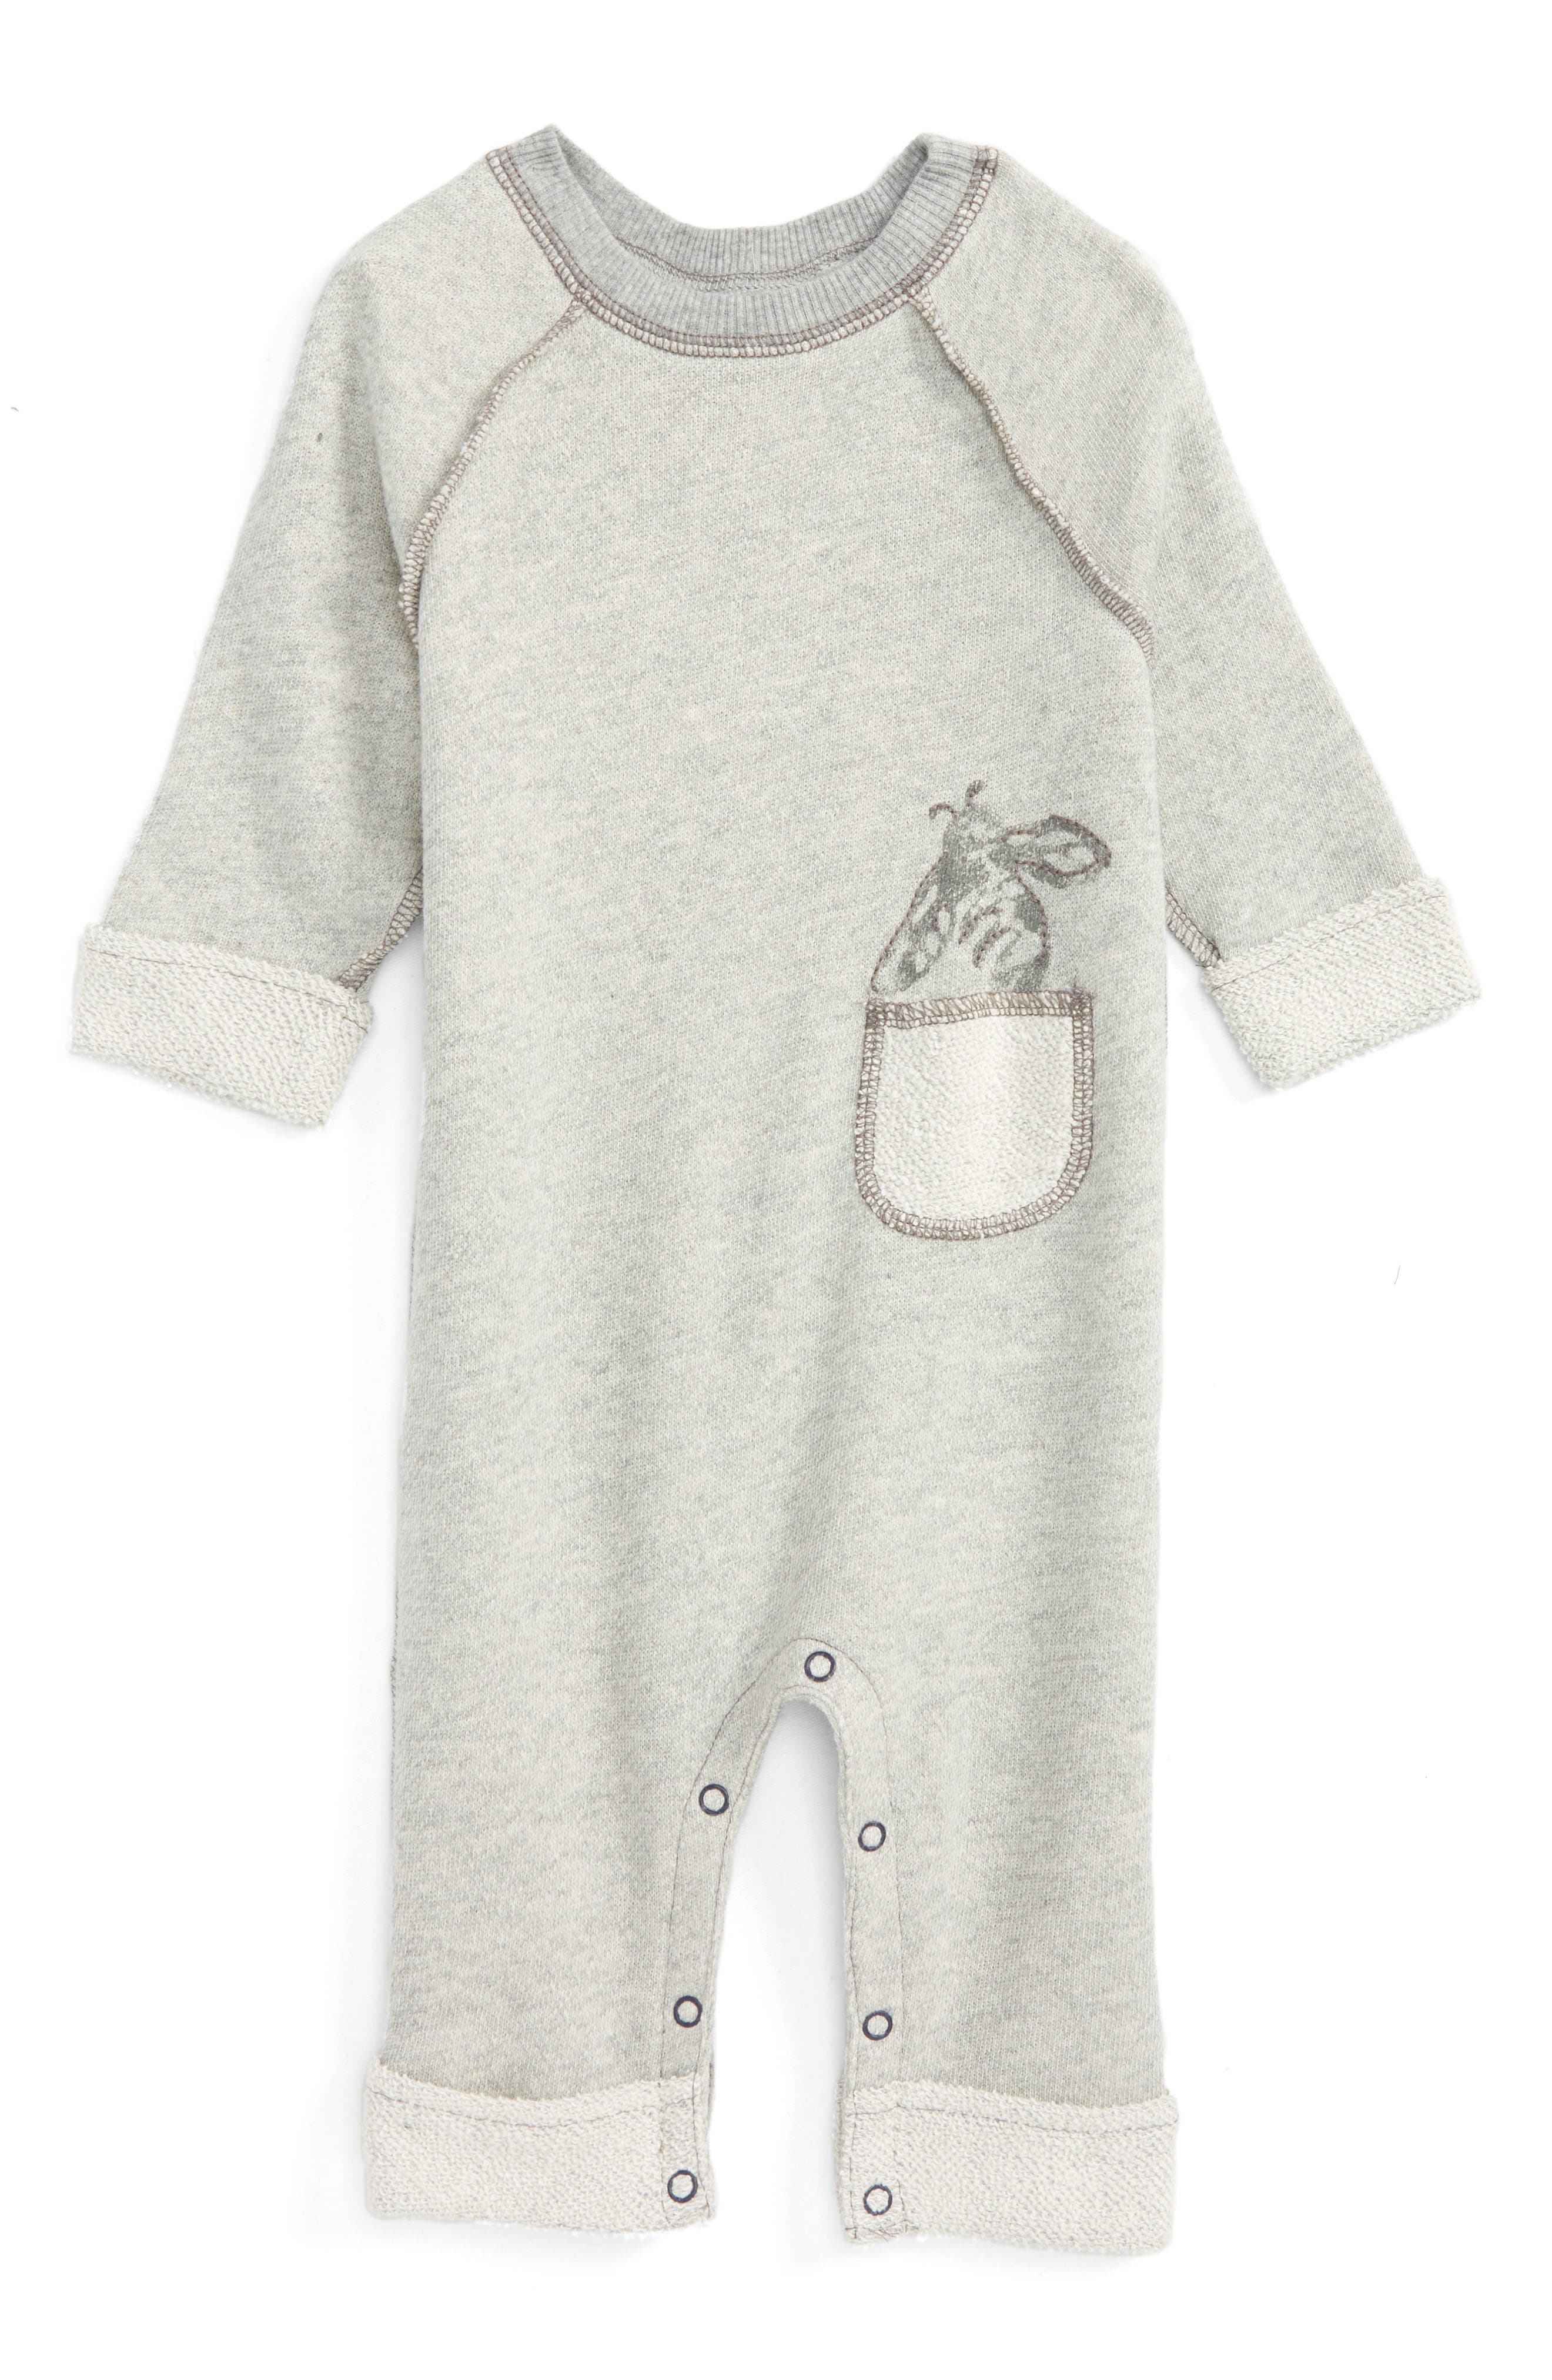 Alternate Image 1 Selected - Burt's Bees Baby Organic Cotton Terry Romper (Baby Boys)